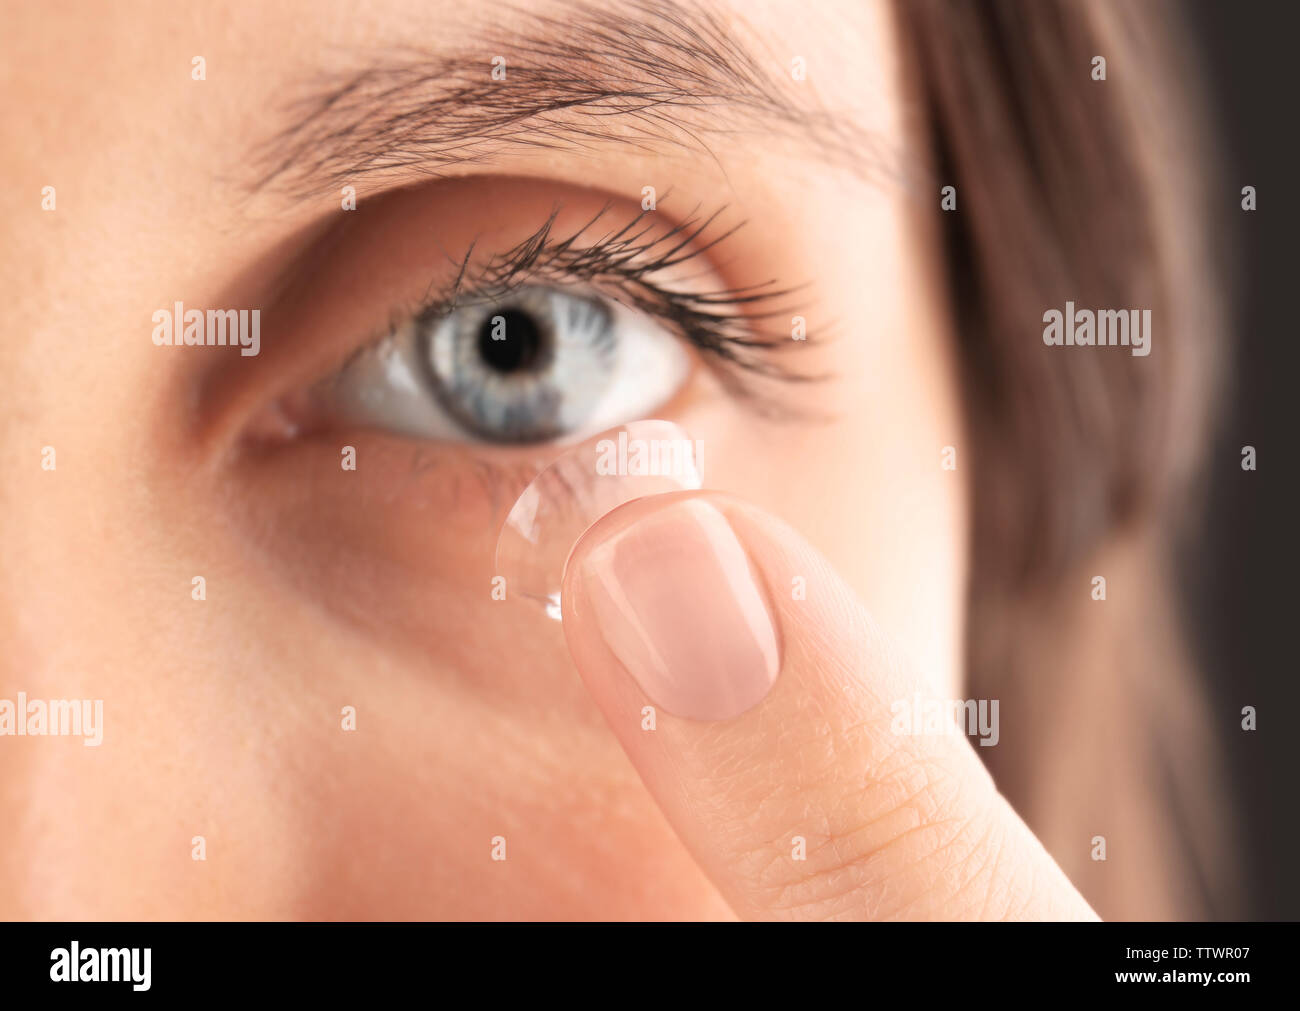 Close up view of young woman putting contact lens in her eye Stock Photo